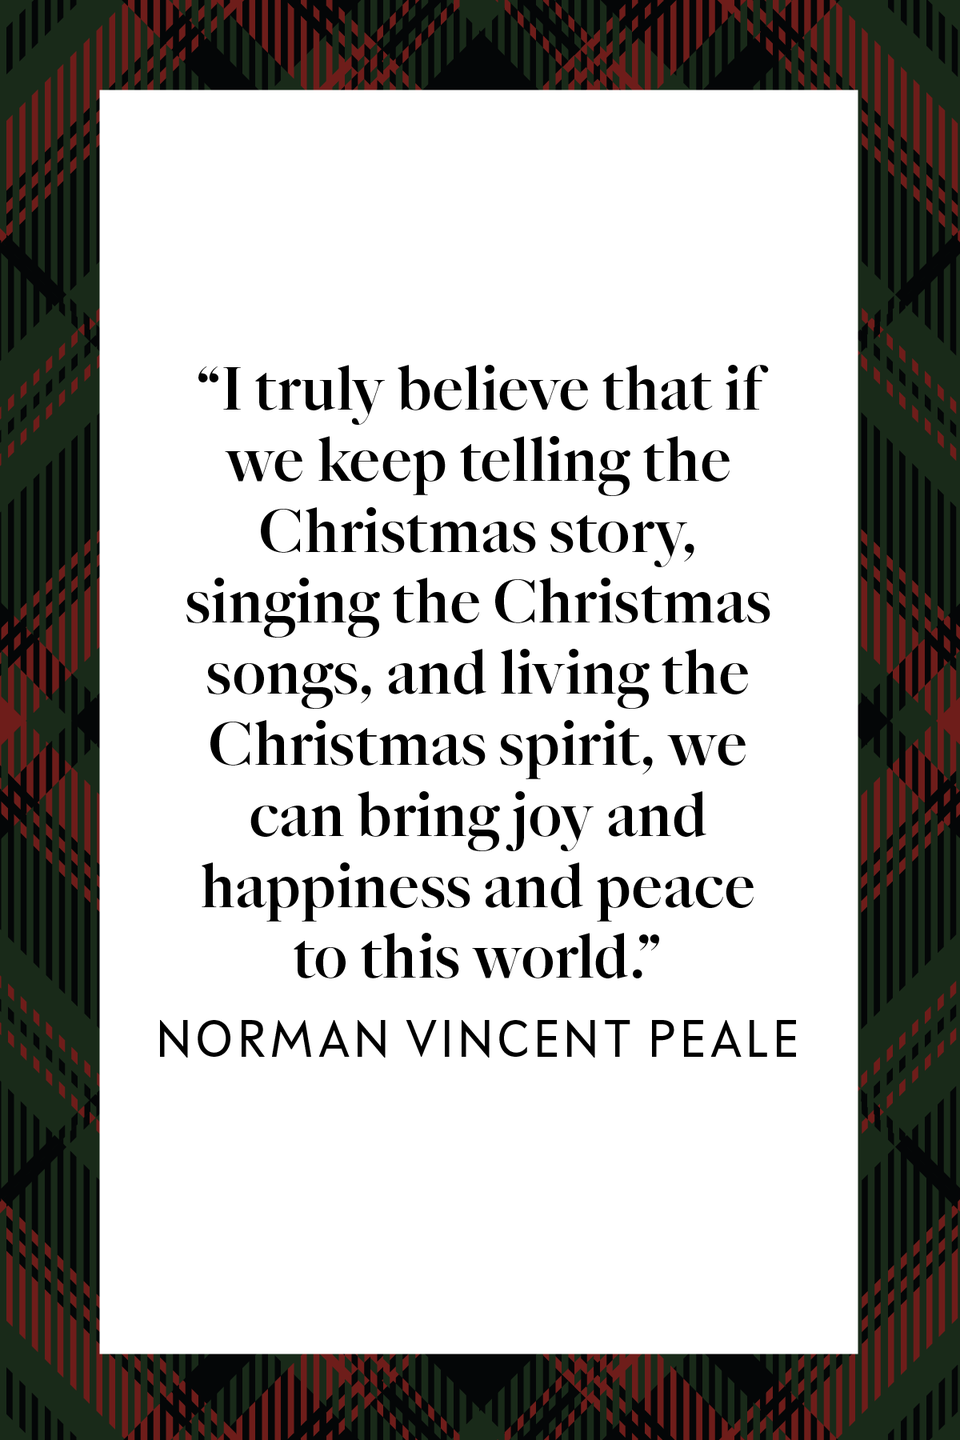 "<p>Known for helping to popularize the concept of positive thinking, author and minister Norman Vincent Peale said, ""I truly believe that if we keep telling the Christmas story, singing the Christmas songs, and living the Christmas spirit, we can bring joy and happiness and peace to this world"" in a <a href=""https://www.amazon.com/Norman-Vincent-Peale-Words-Inspired/dp/0884861007?tag=syn-yahoo-20&ascsubtag=%5Bartid%7C10072.g.34536312%5Bsrc%7Cyahoo-us"" rel=""nofollow noopener"" target=""_blank"" data-ylk=""slk:collection of his readings"" class=""link rapid-noclick-resp"">collection of his readings</a>.<br></p>"